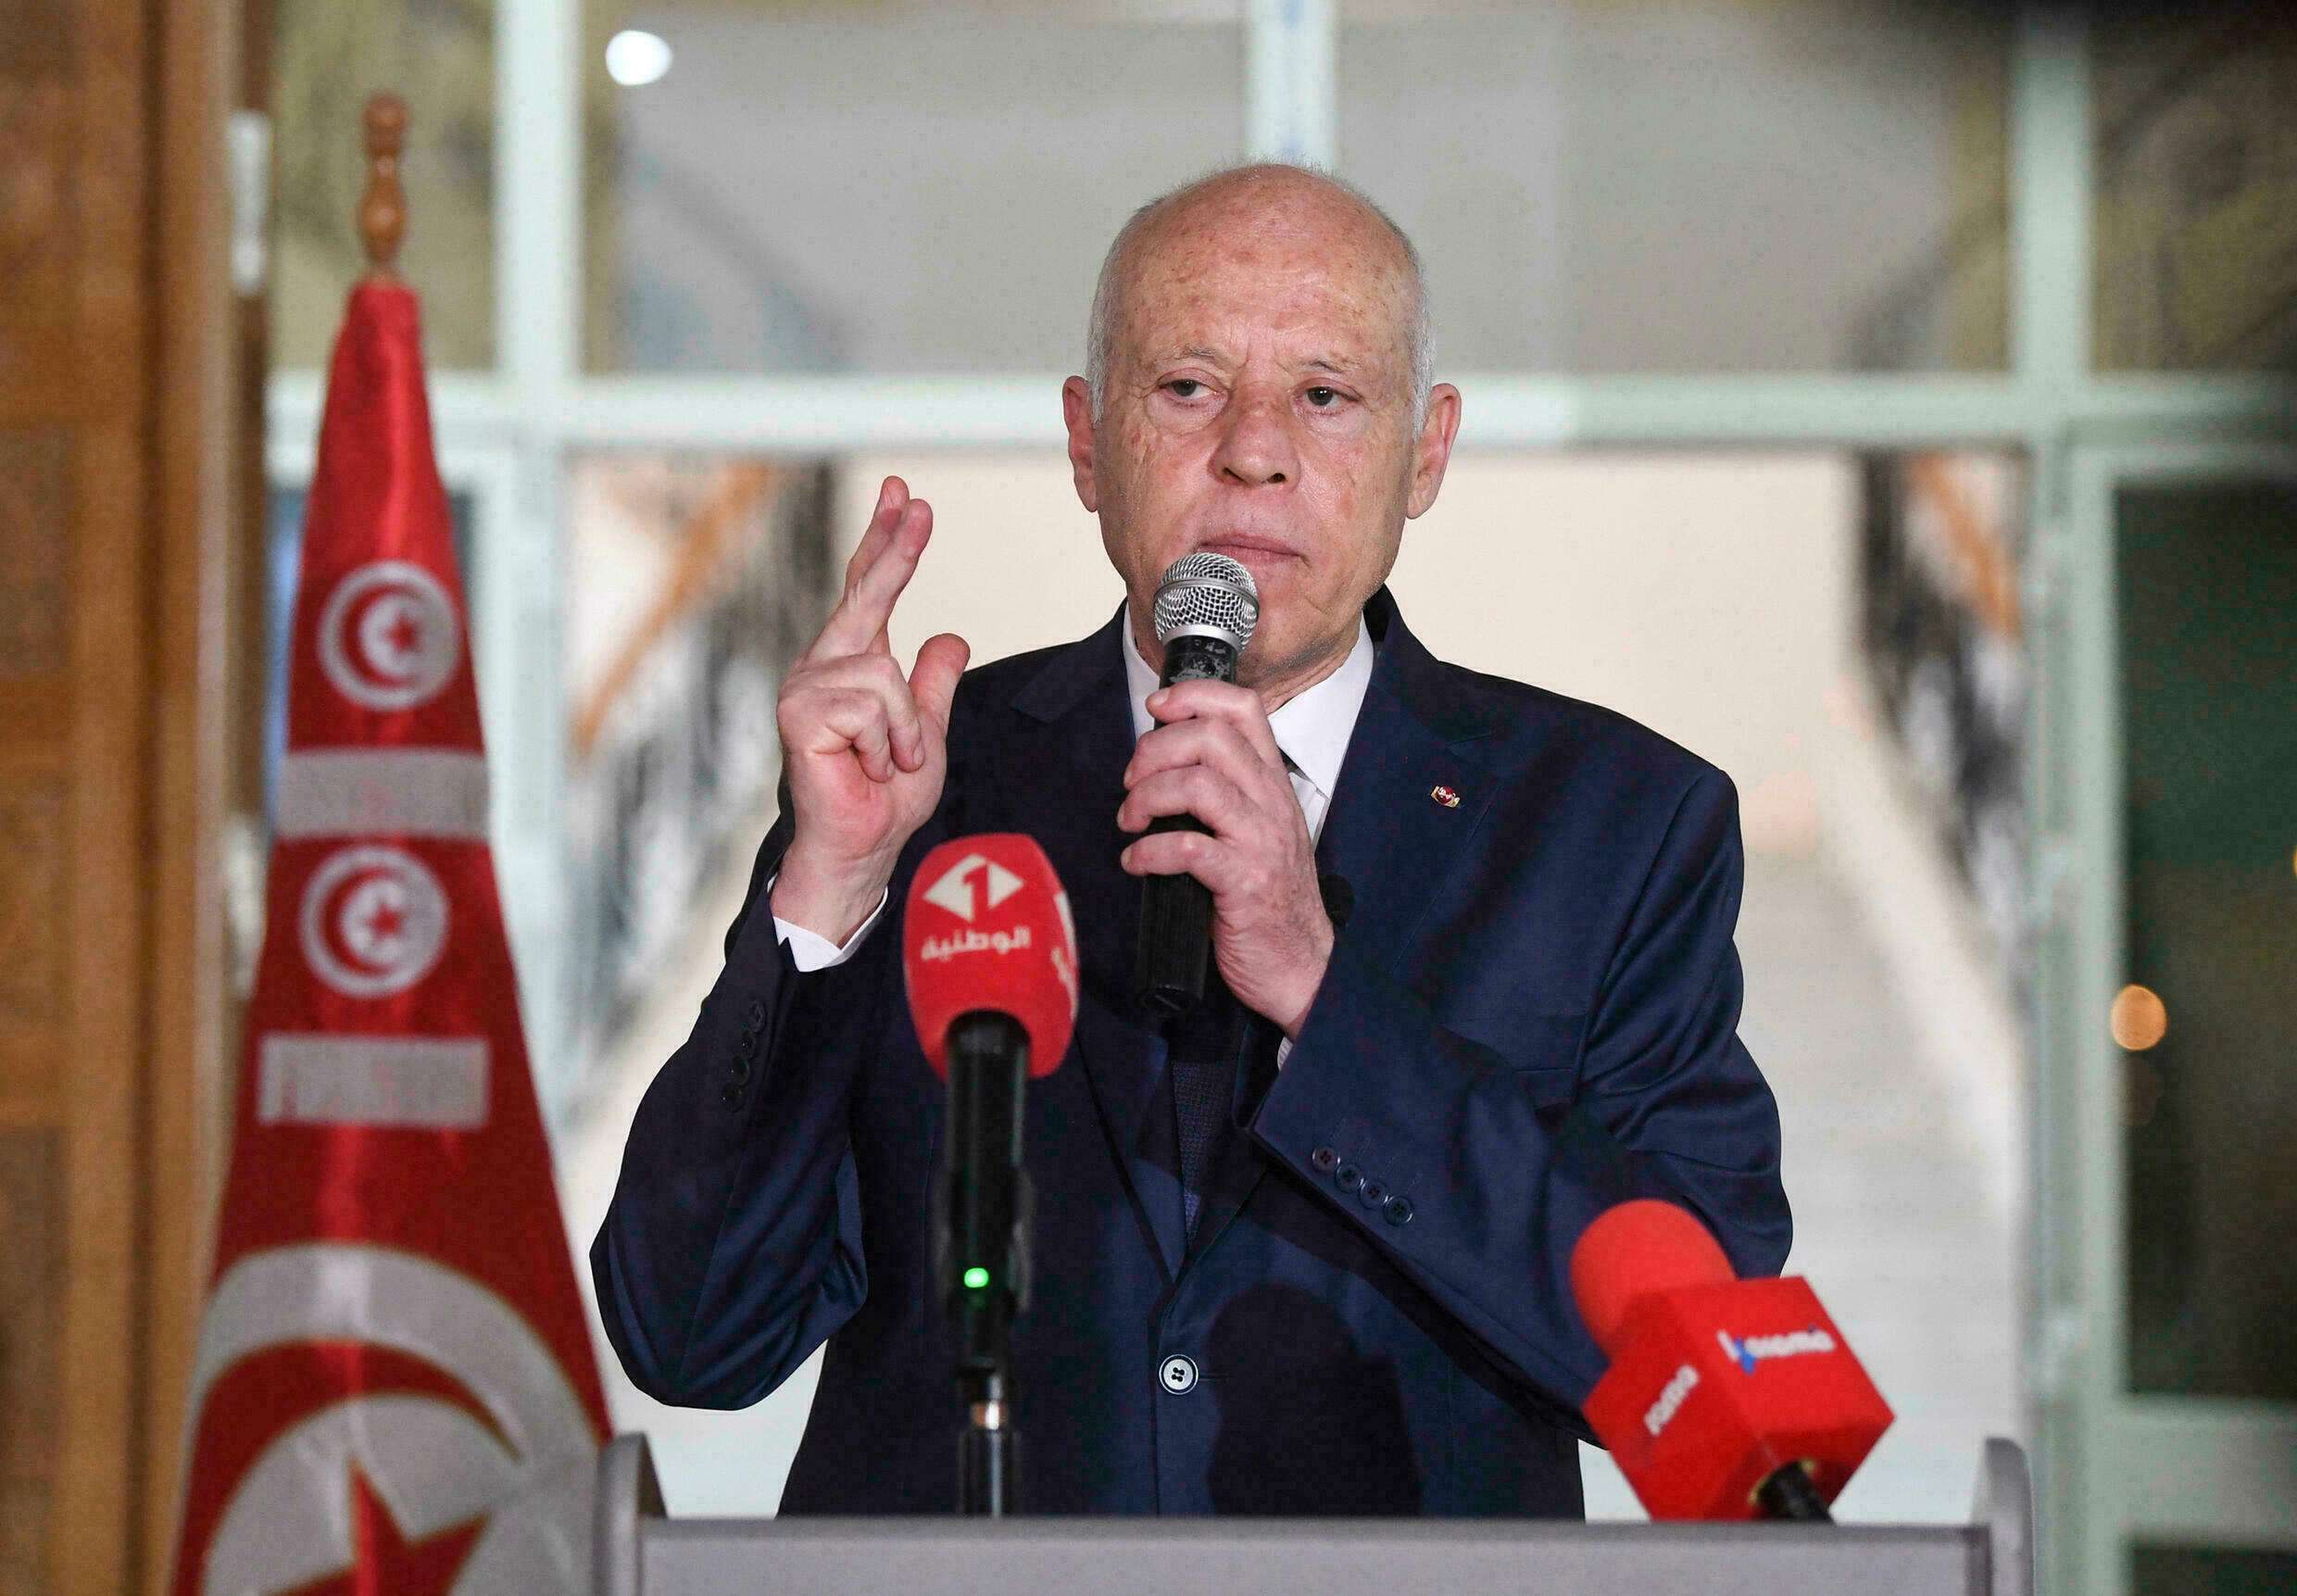 New report: One-man rule setback for human rights and rule of law in Tunisia